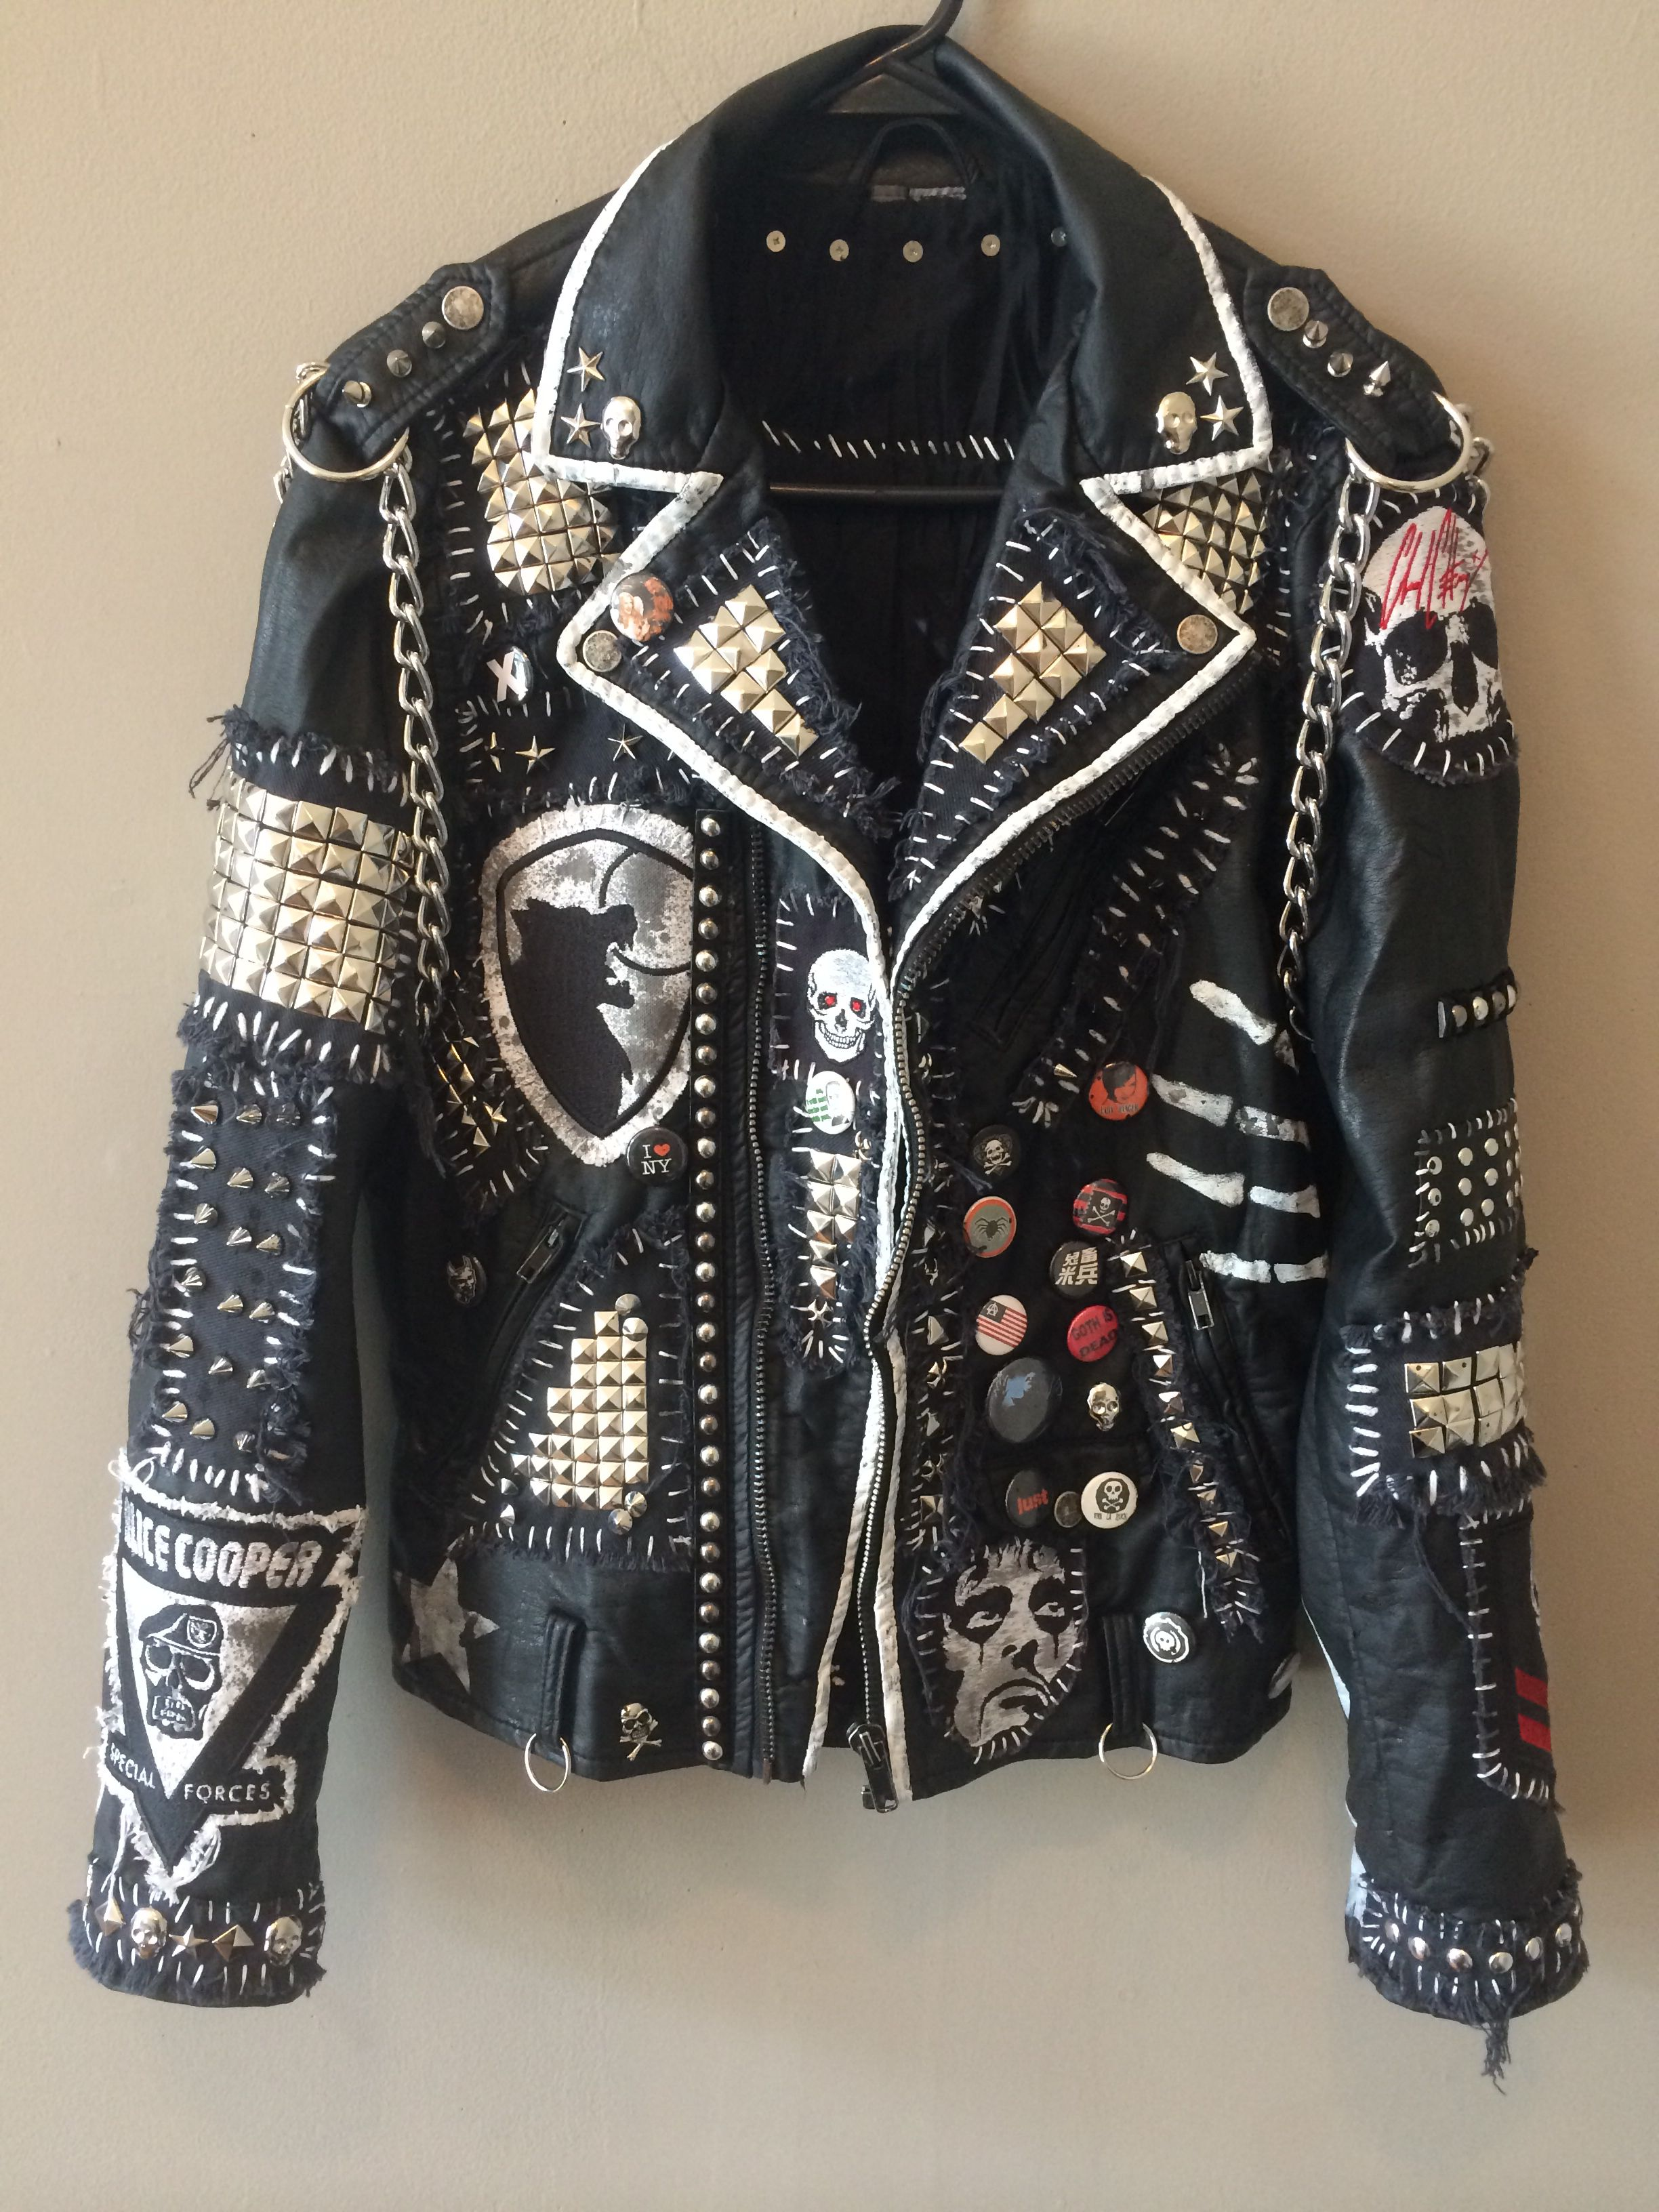 7588e5fa49 Custom punk jackets by Chad Cherry from Chad Cherry WRONG METAL JACKET  IDIOTS +ALICE COOPER PATCHES YOU MORON